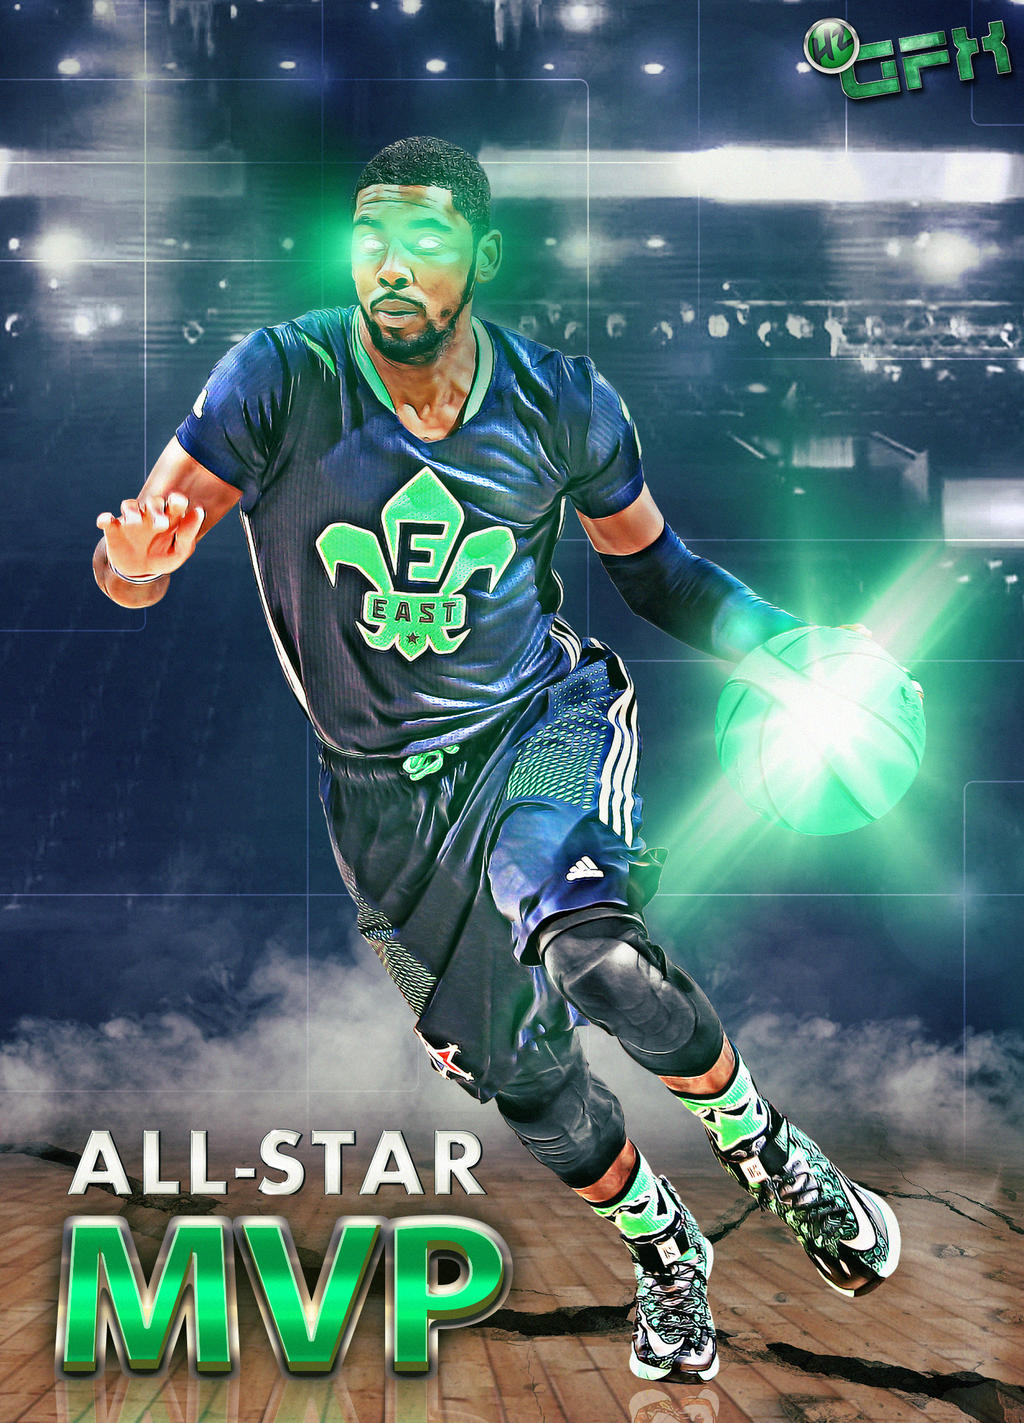 2014 NBA All Star MVP Kyrie Irving By HZ Designs